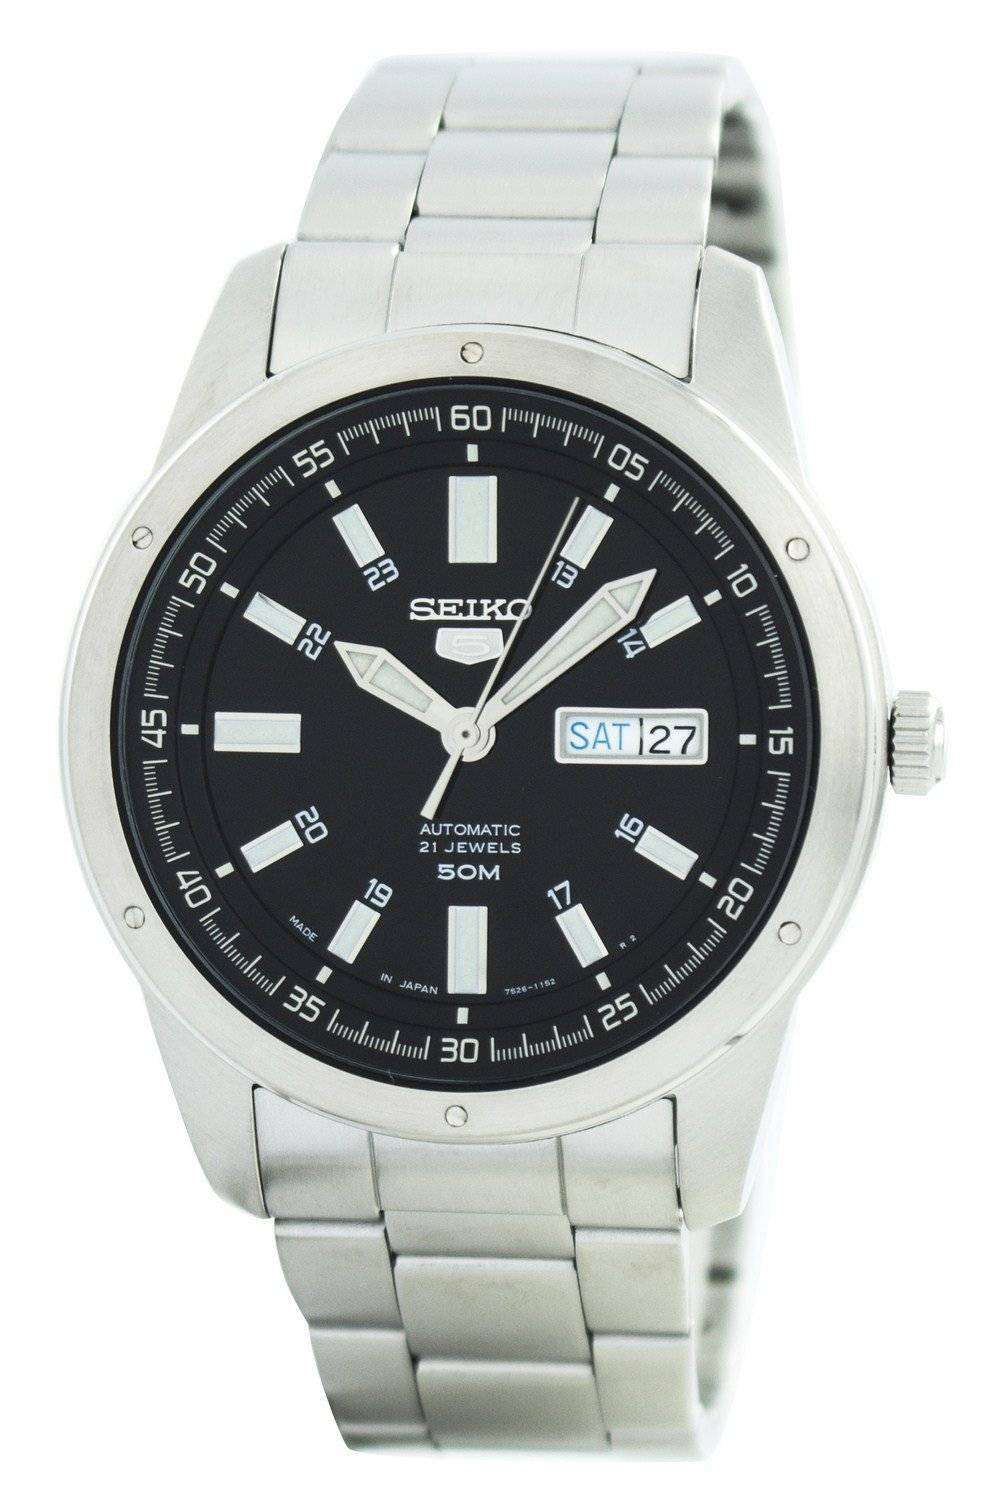 Seiko 5 automatic 21 jewels japan made snkn13 snkn13j1 snkn13j men 39 s watch downunderwatches for Watches of japan